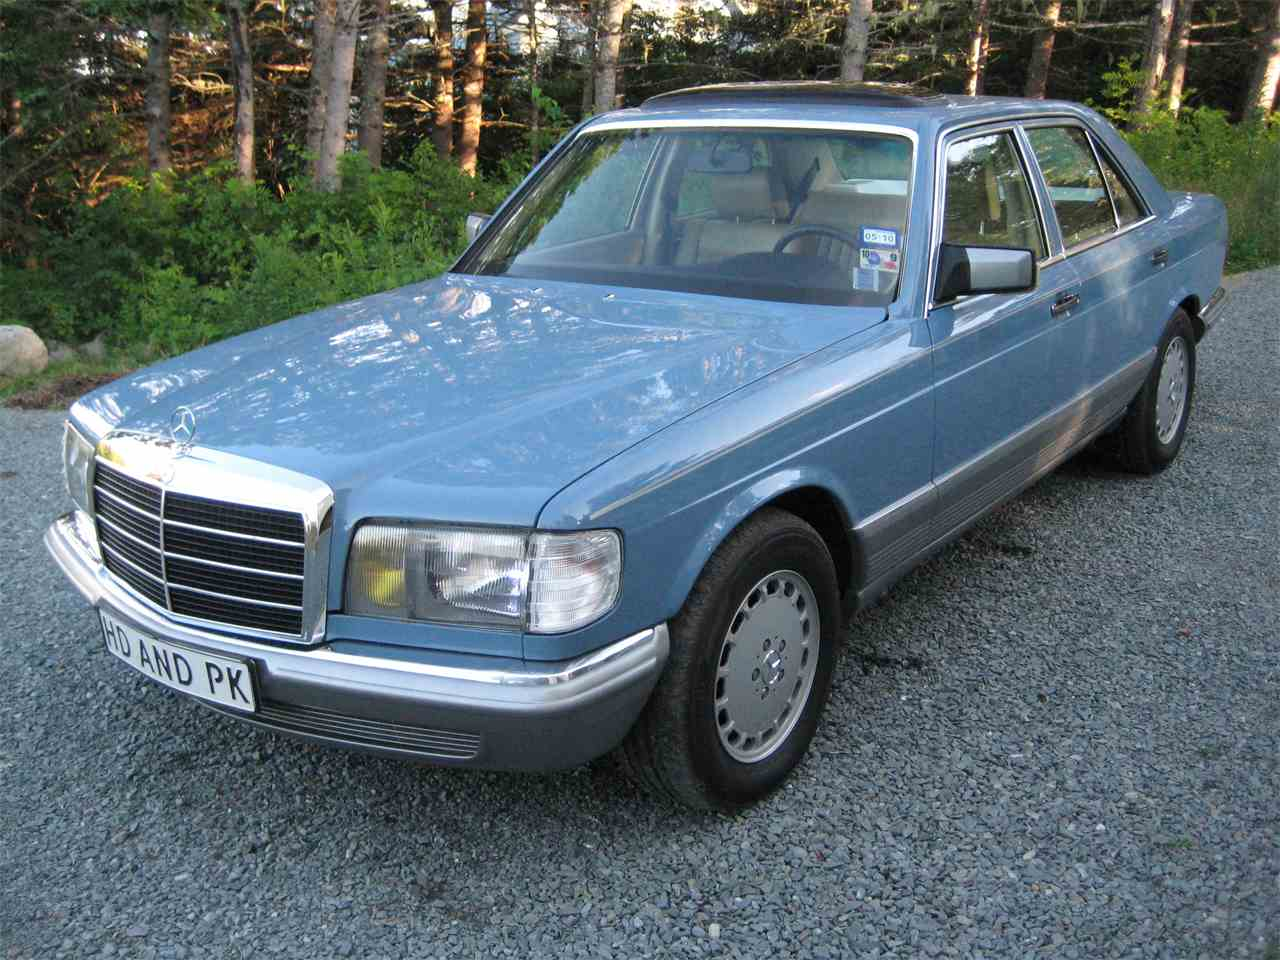 1981 Mercedes-Benz 300SD for Sale | ClassicCars.com | CC-1027940